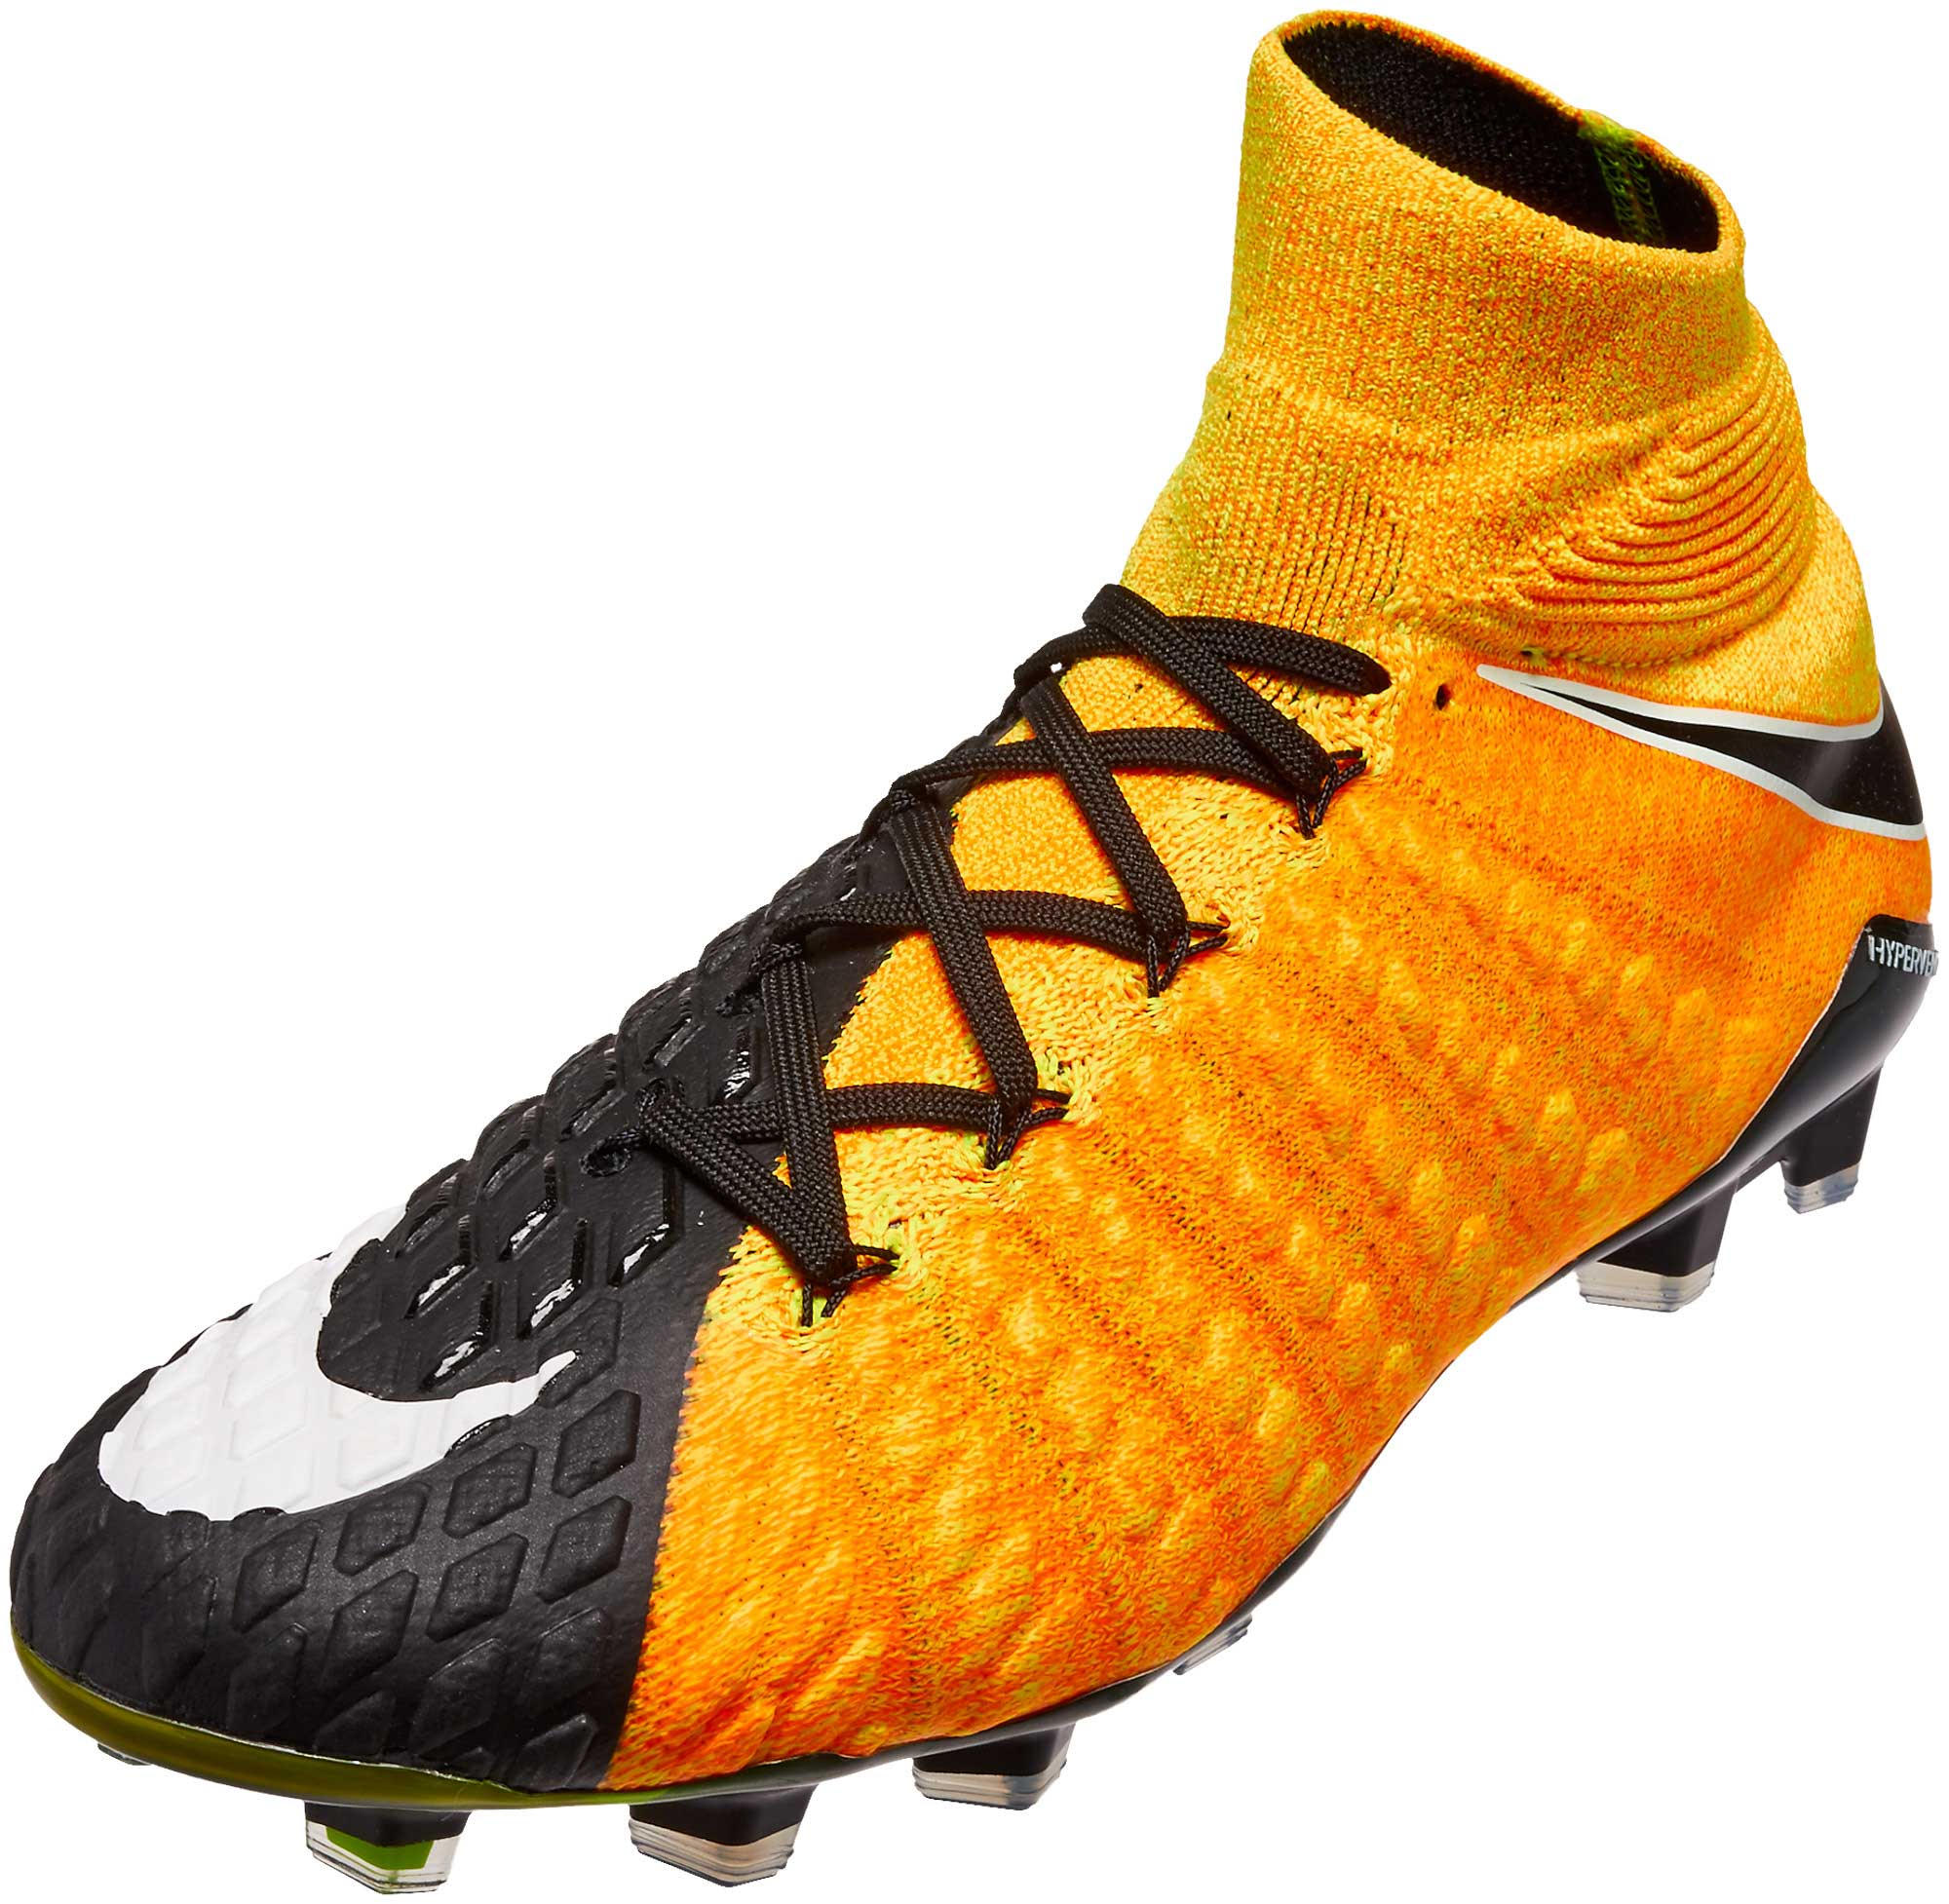 Nike Hypervenom Phantom III DF FG - Laser Orange   Black - Soccer ... 037764bbeddb